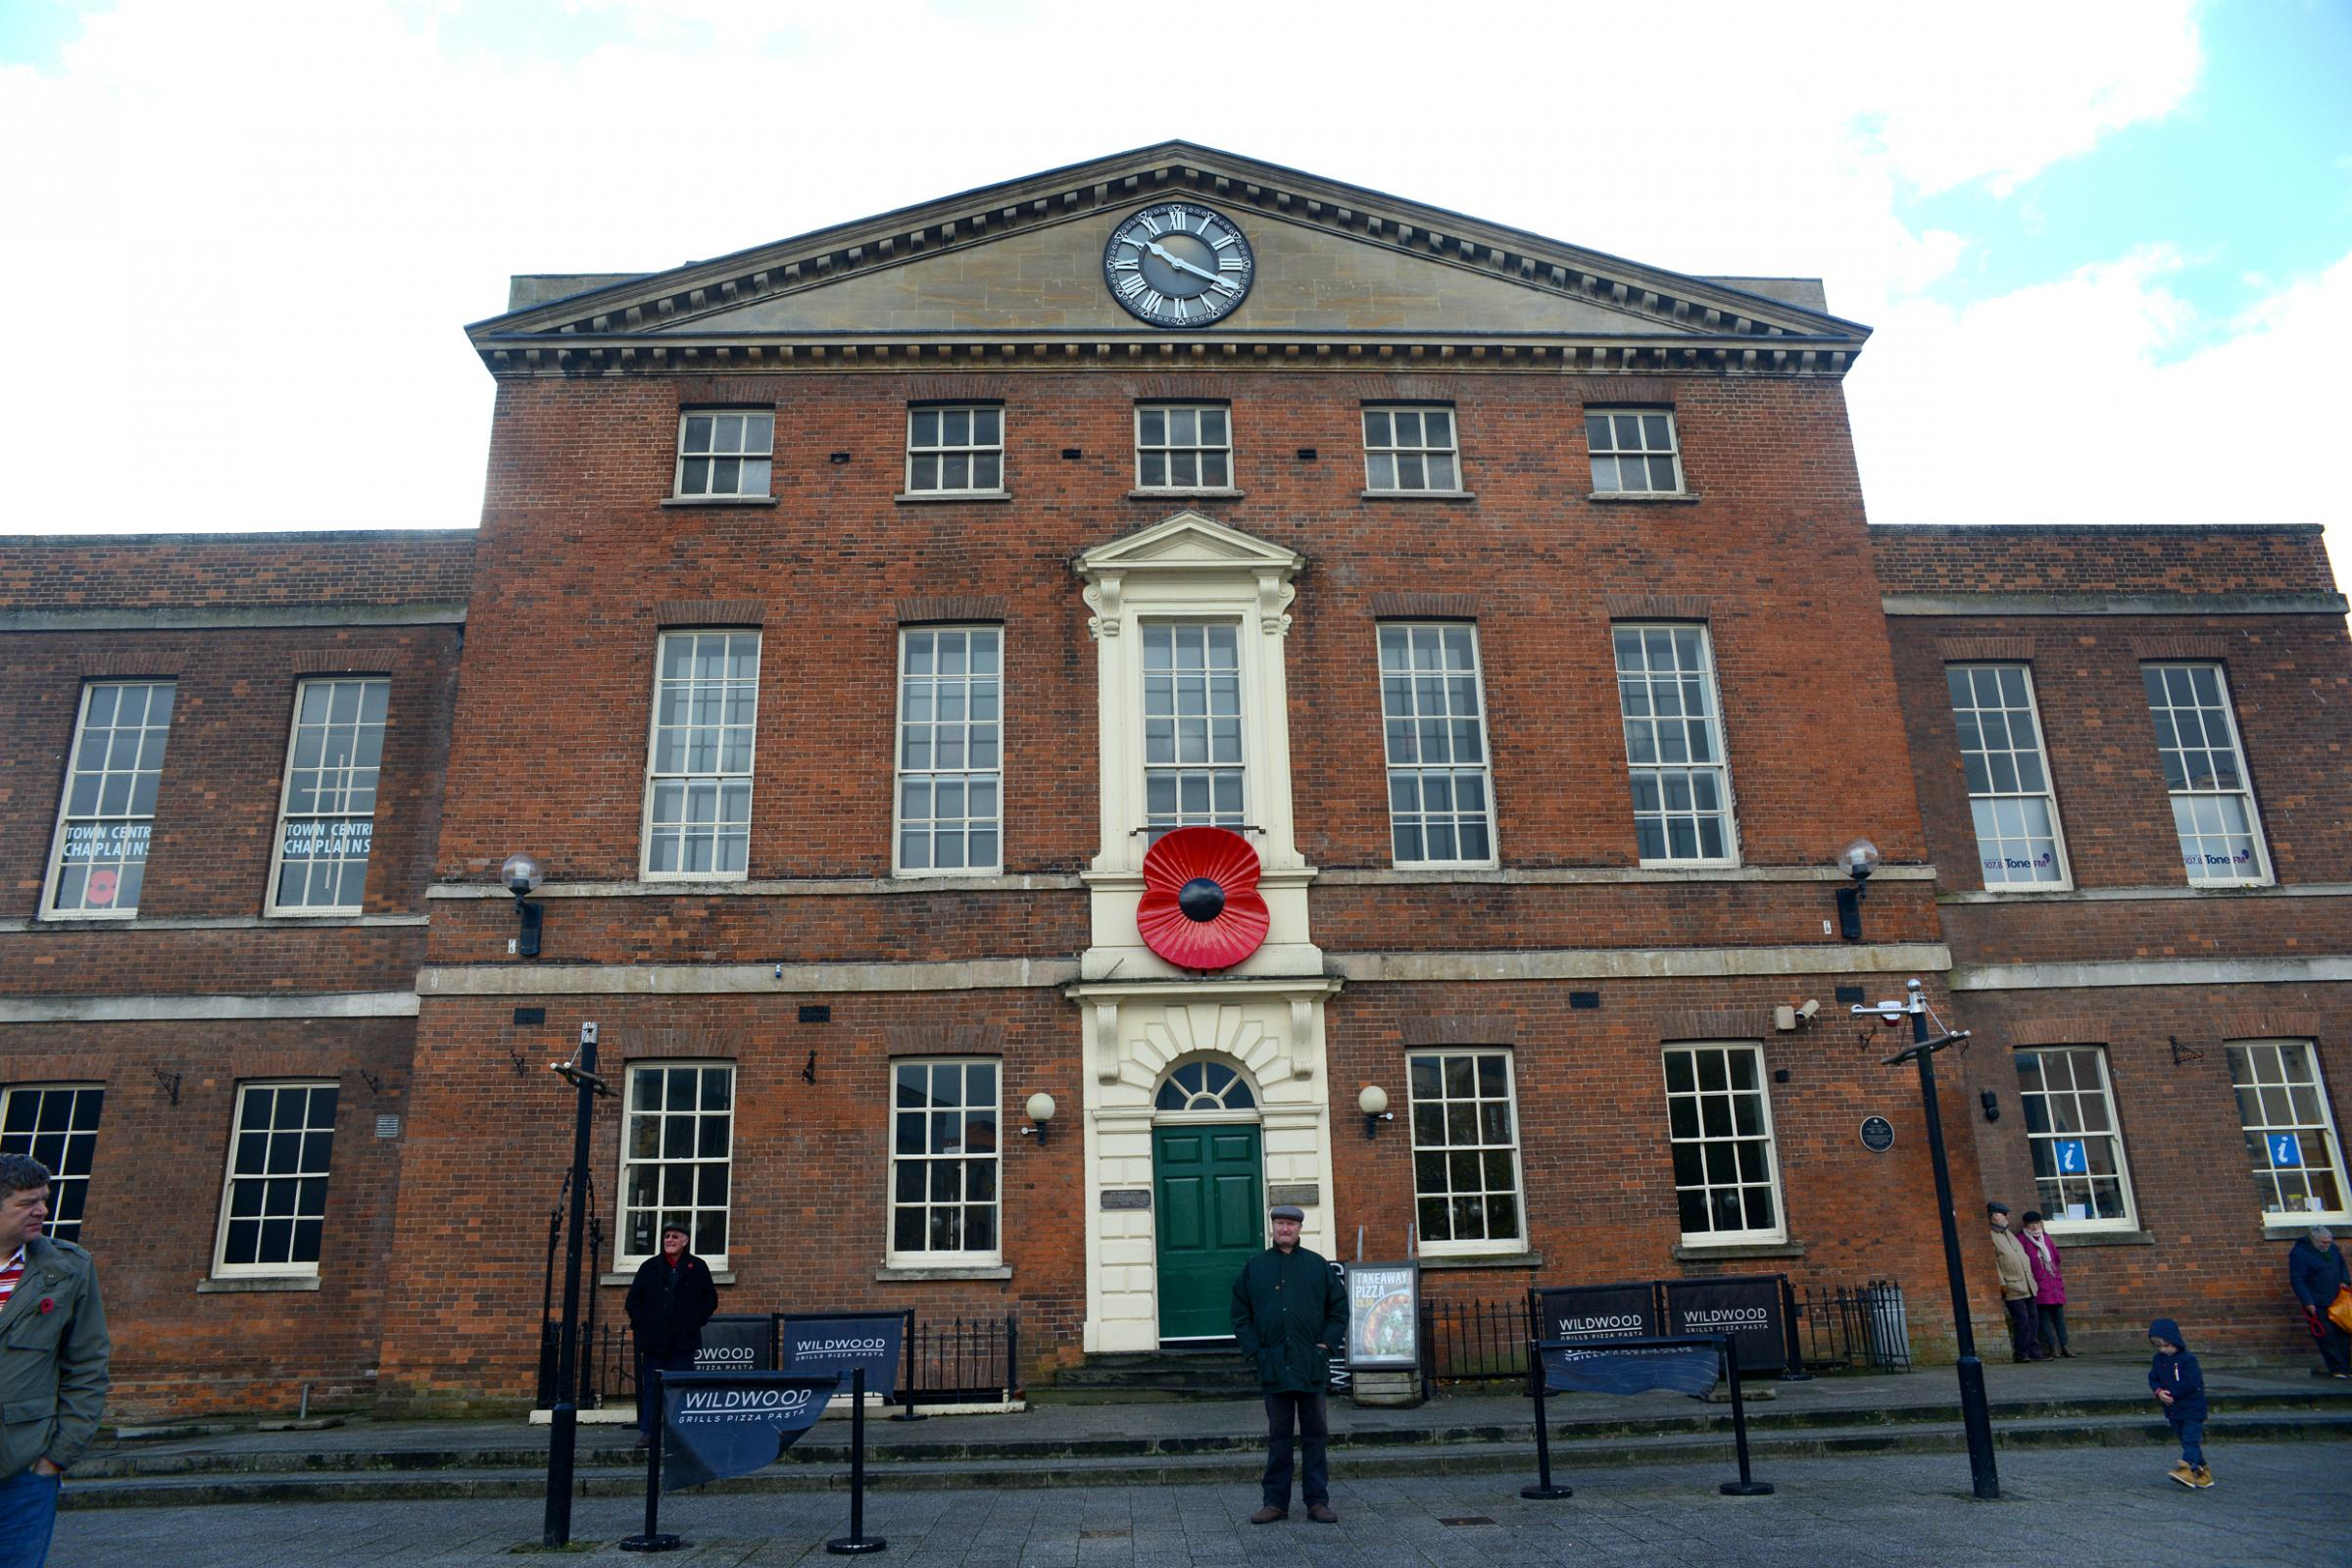 PLANNING: For Remembrance events in Taunton